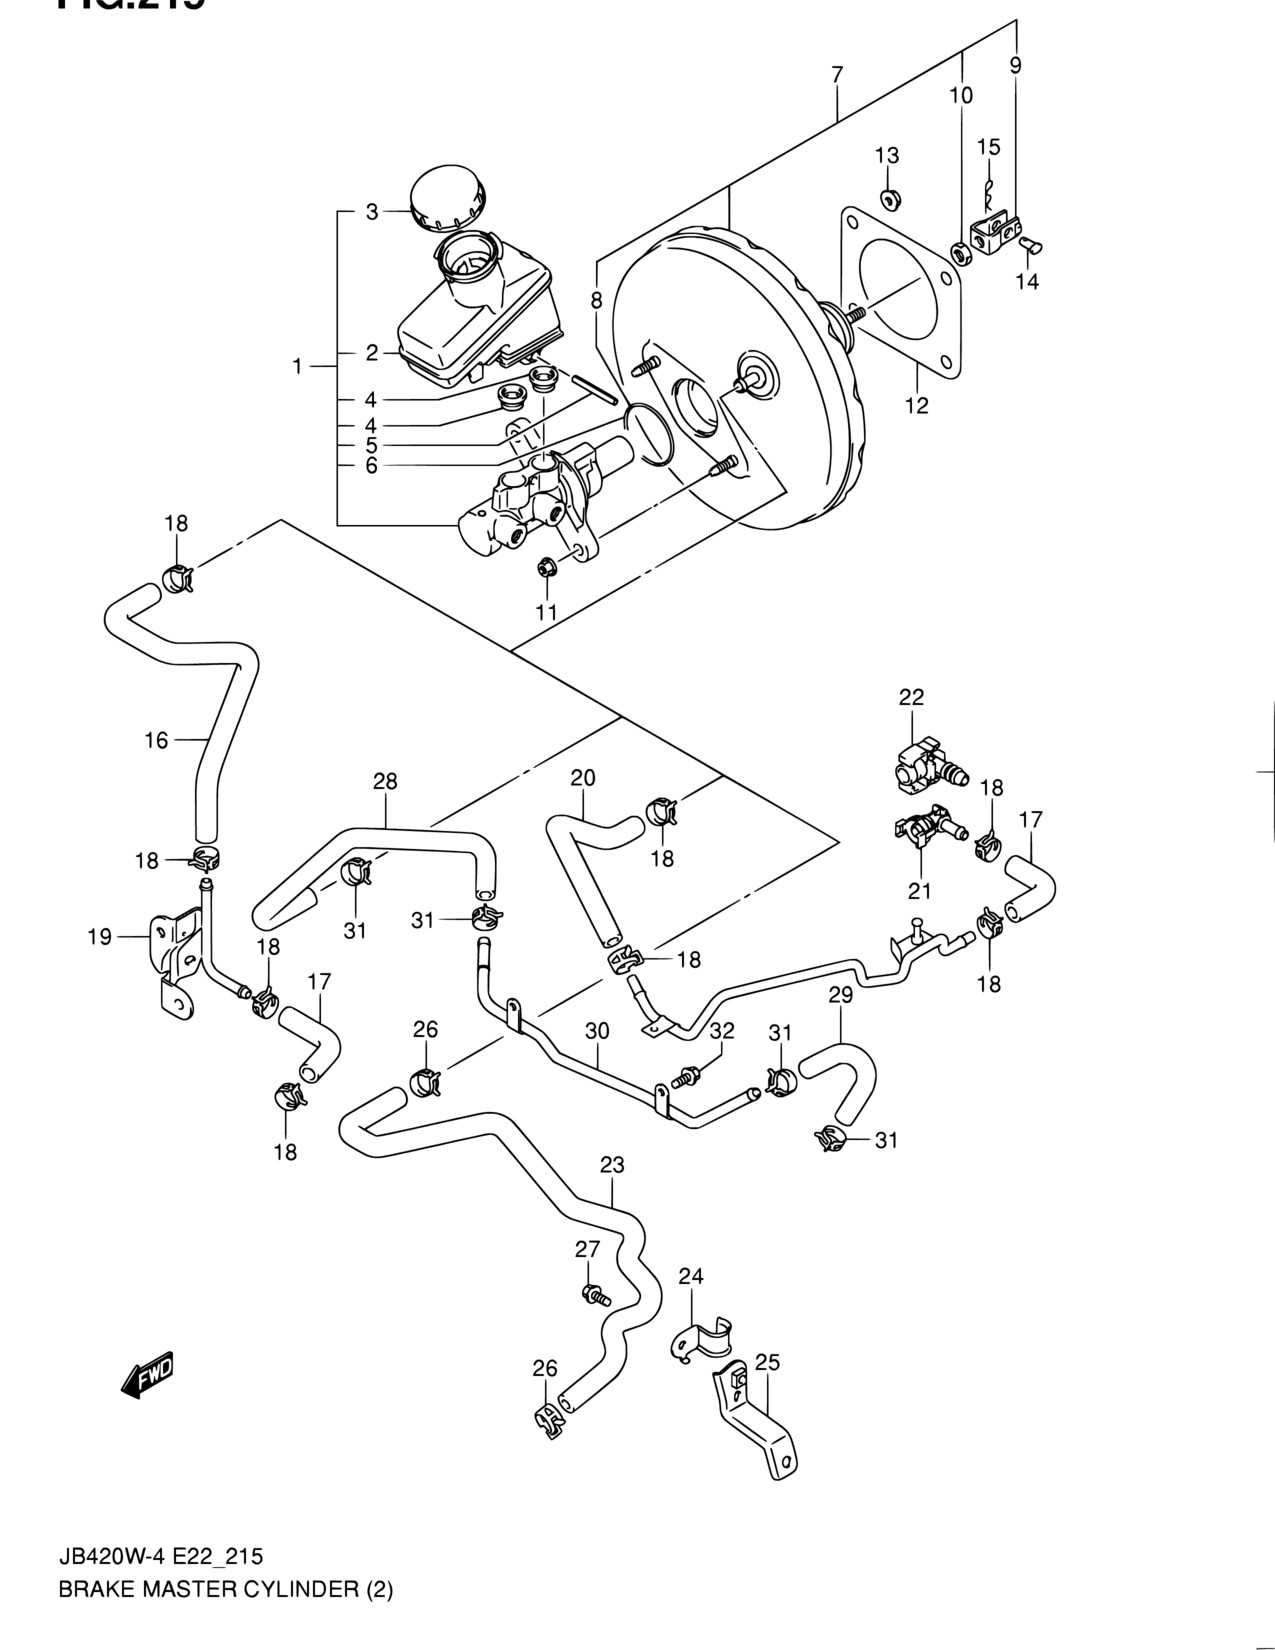 brake booster parts diagram hatco glo ray wiring diagram